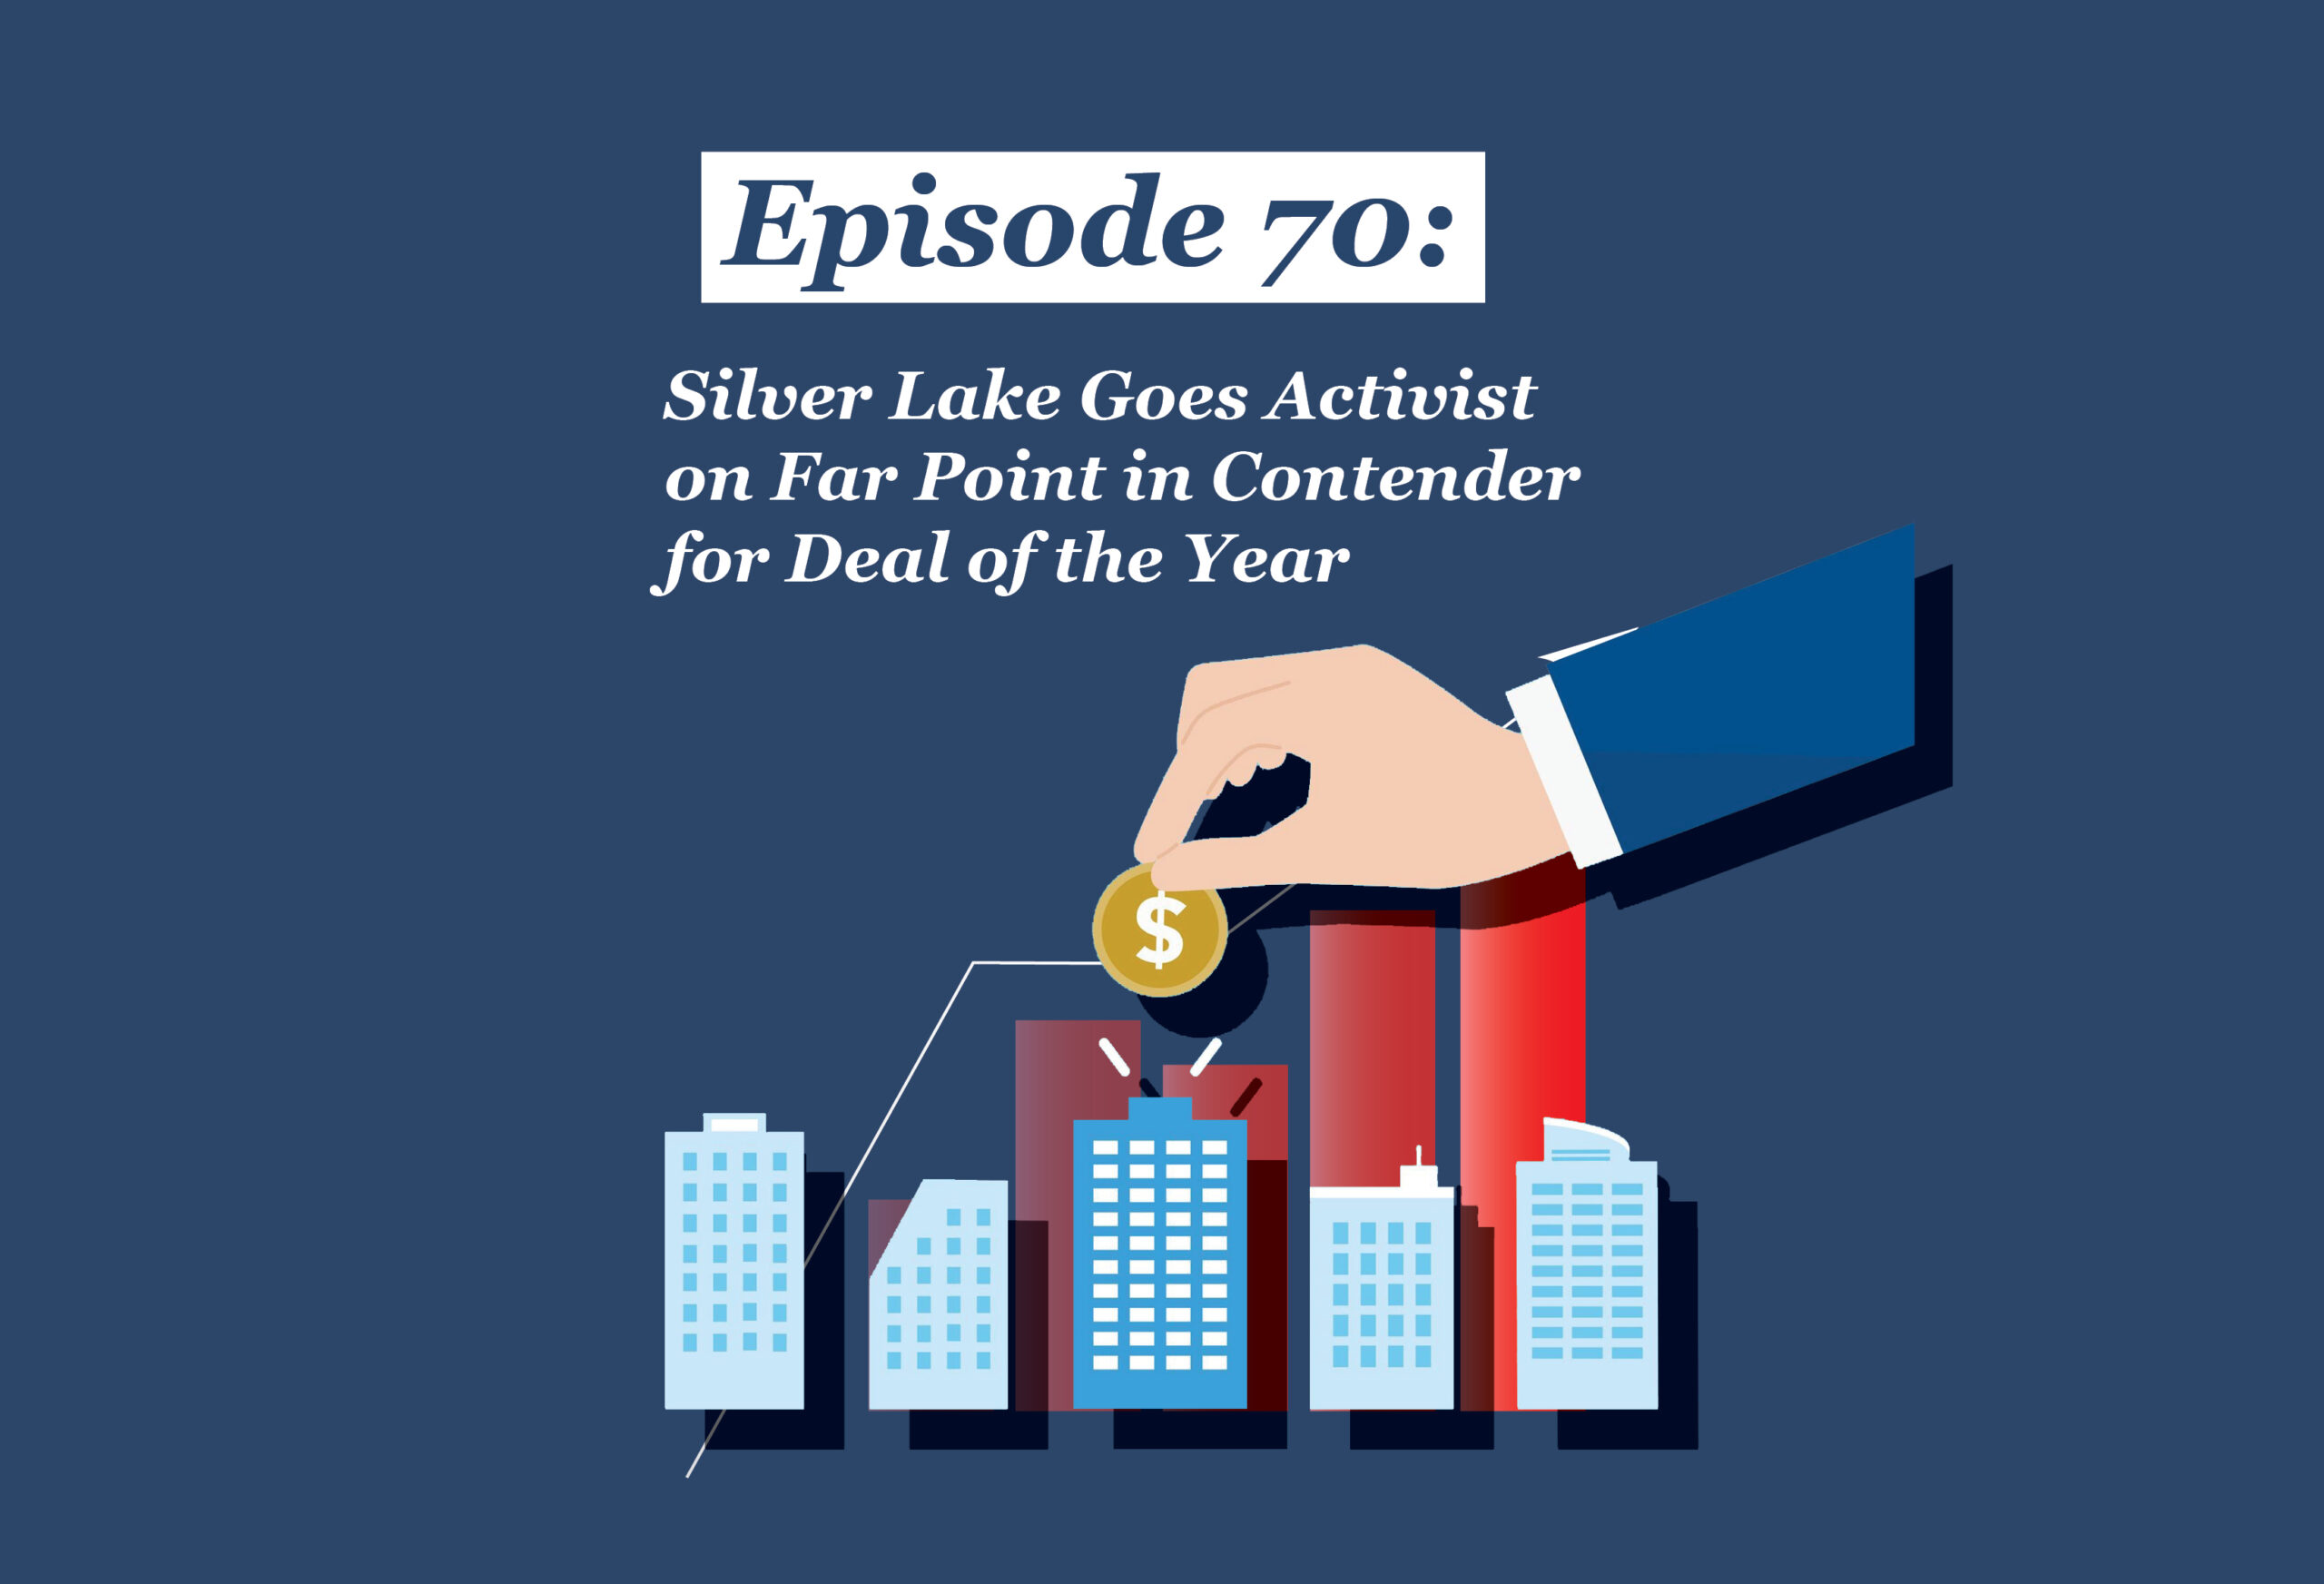 Absolute Return Podcast #70: Silver Lake Goes Activist on Far Point in Contender for Deal of the Year